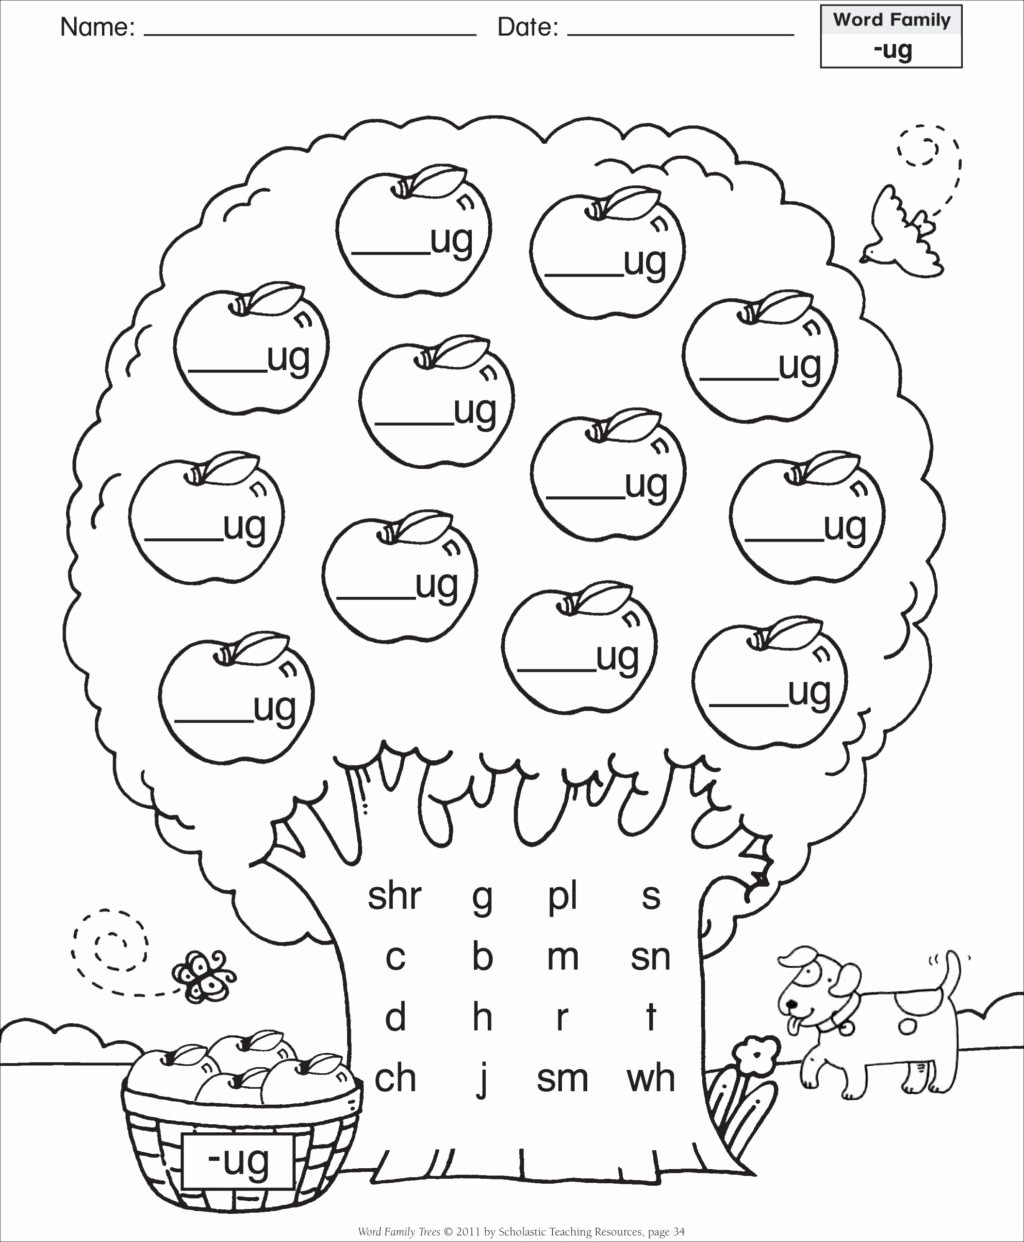 Family Worksheets for Preschoolers Free Worksheet Worksheet astonishing Printable Tracing